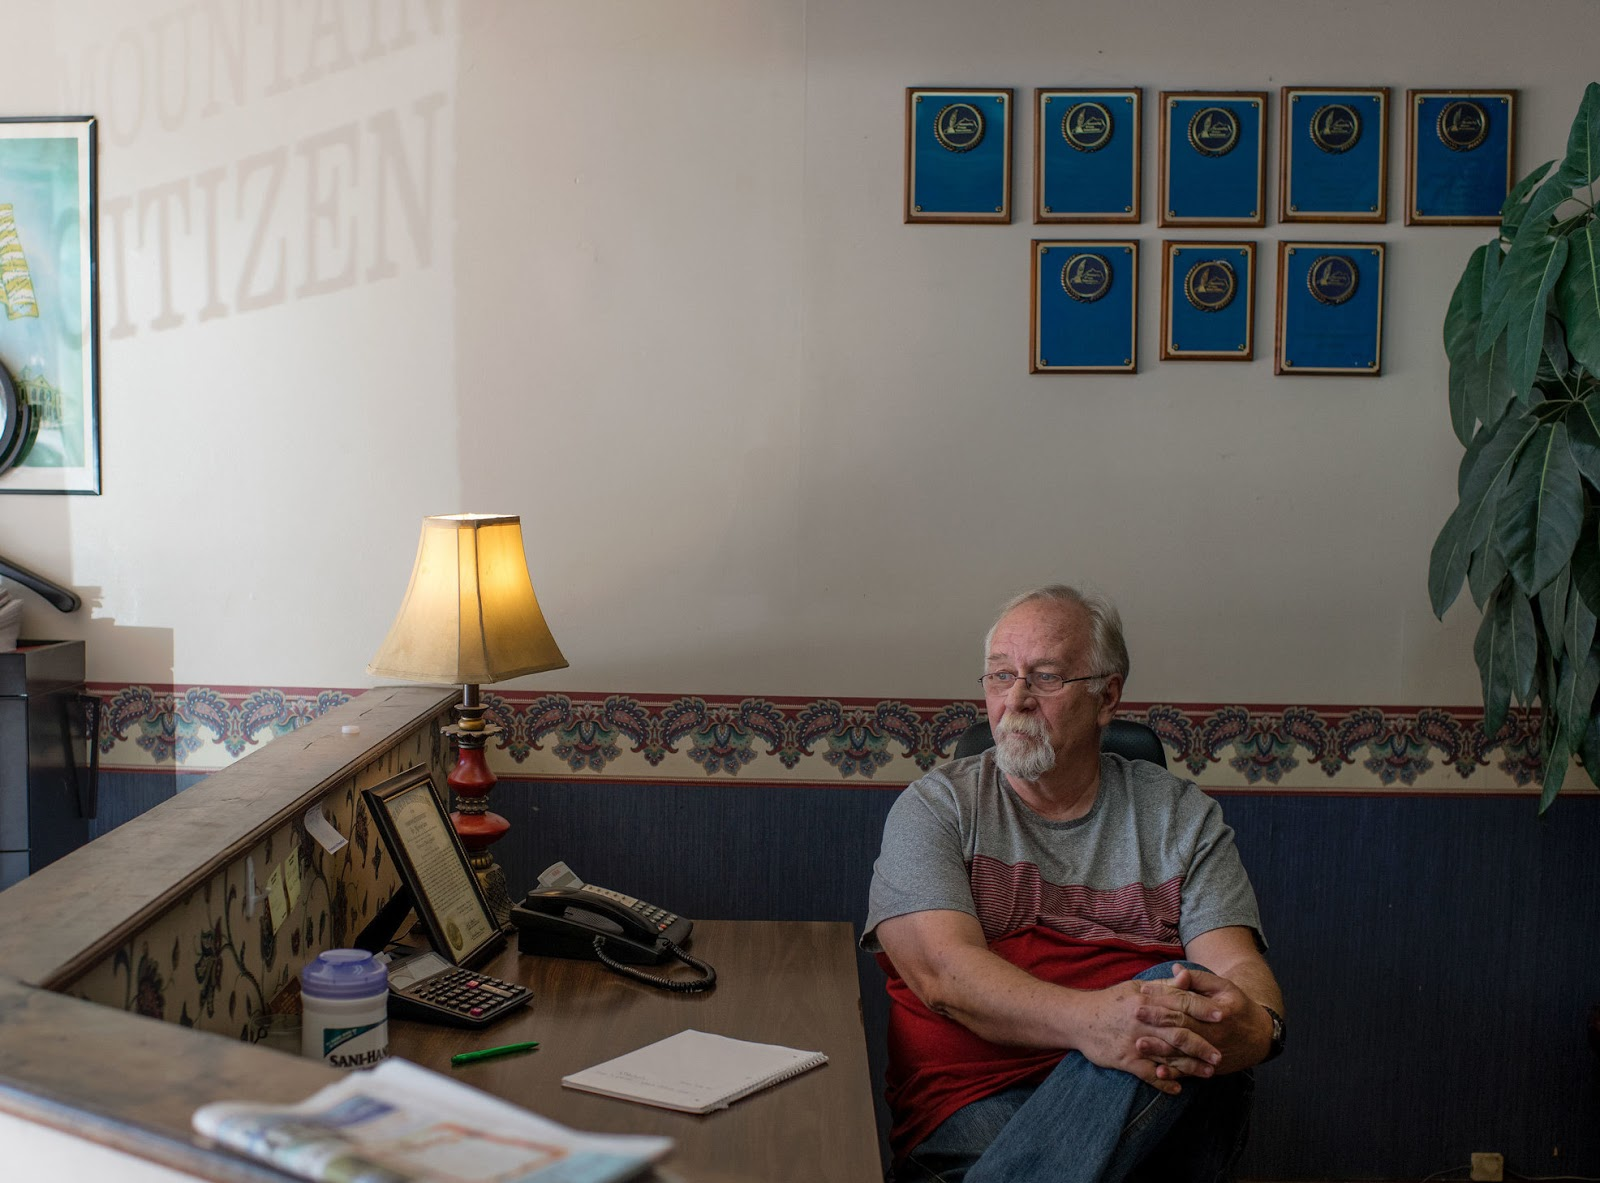 gary ball editor of the weekly mountain citizen has been reporting on water issues in martin county for nearly two decades prompting the state to open